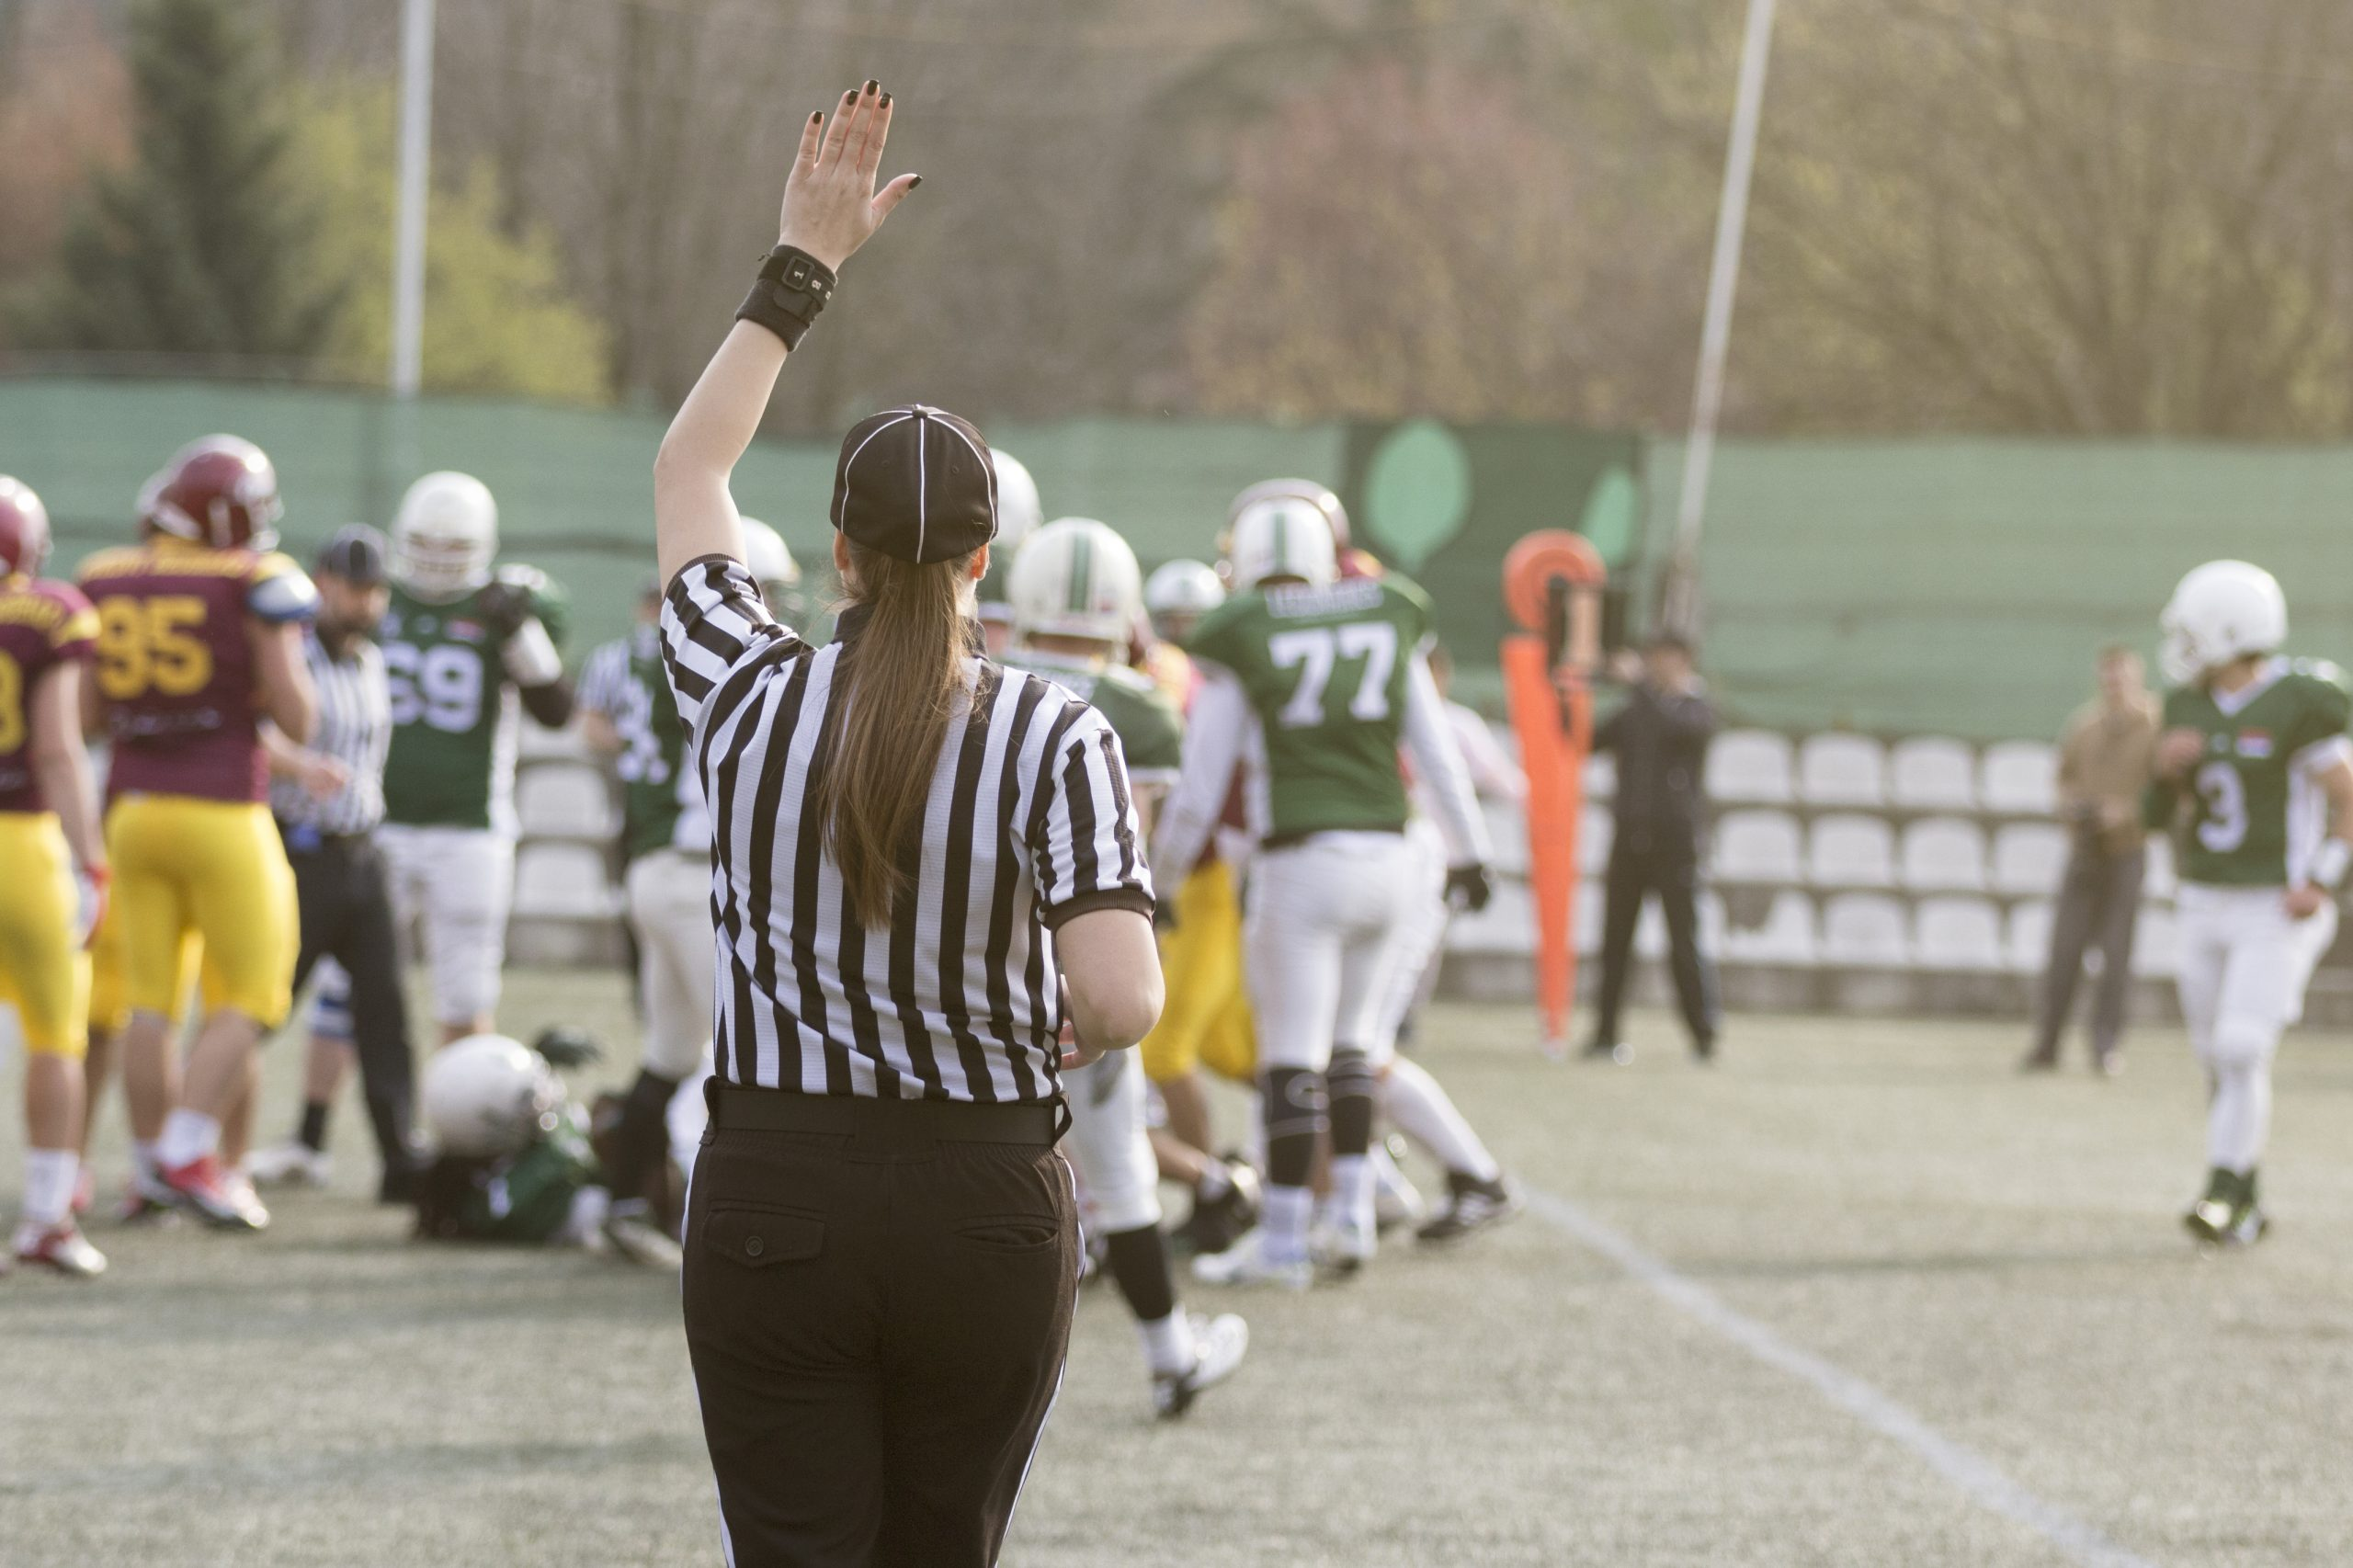 Female football referee giving signals and blurred players in the background